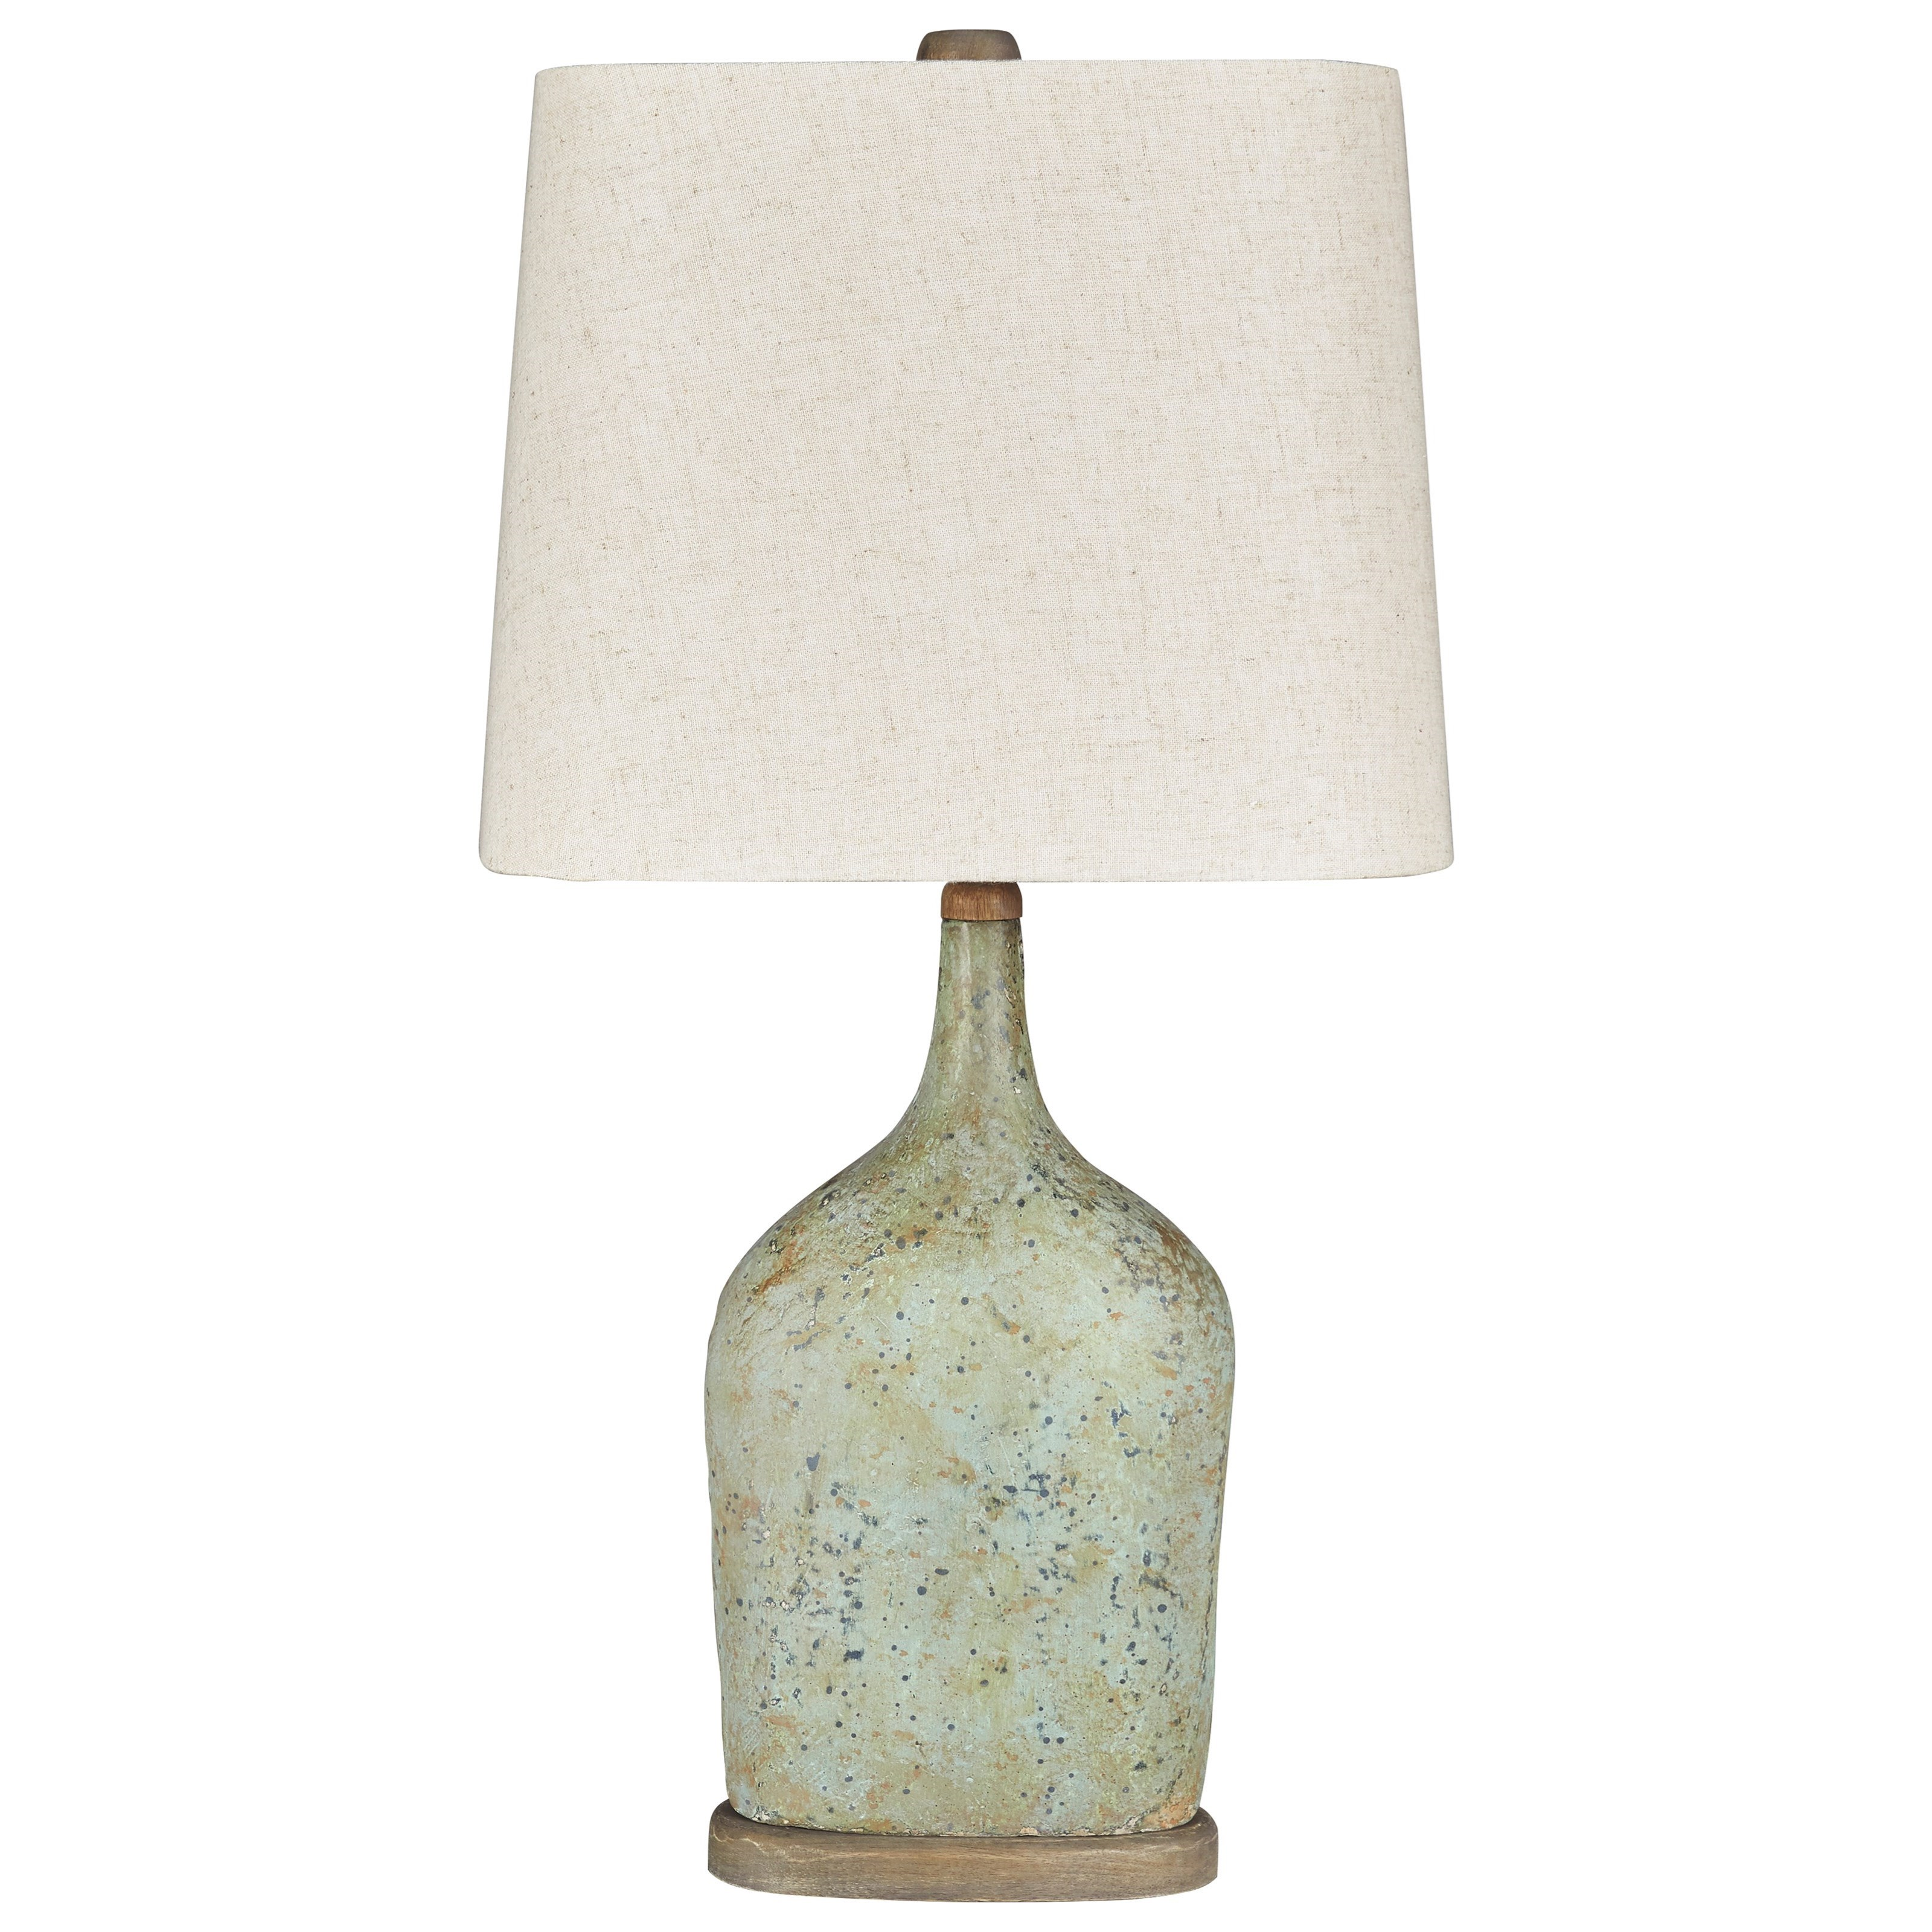 Lamps - Vintage Style Set of 2 Maribeth Sage Paper Table Lamps by Signature Design by Ashley at Zak's Warehouse Clearance Center